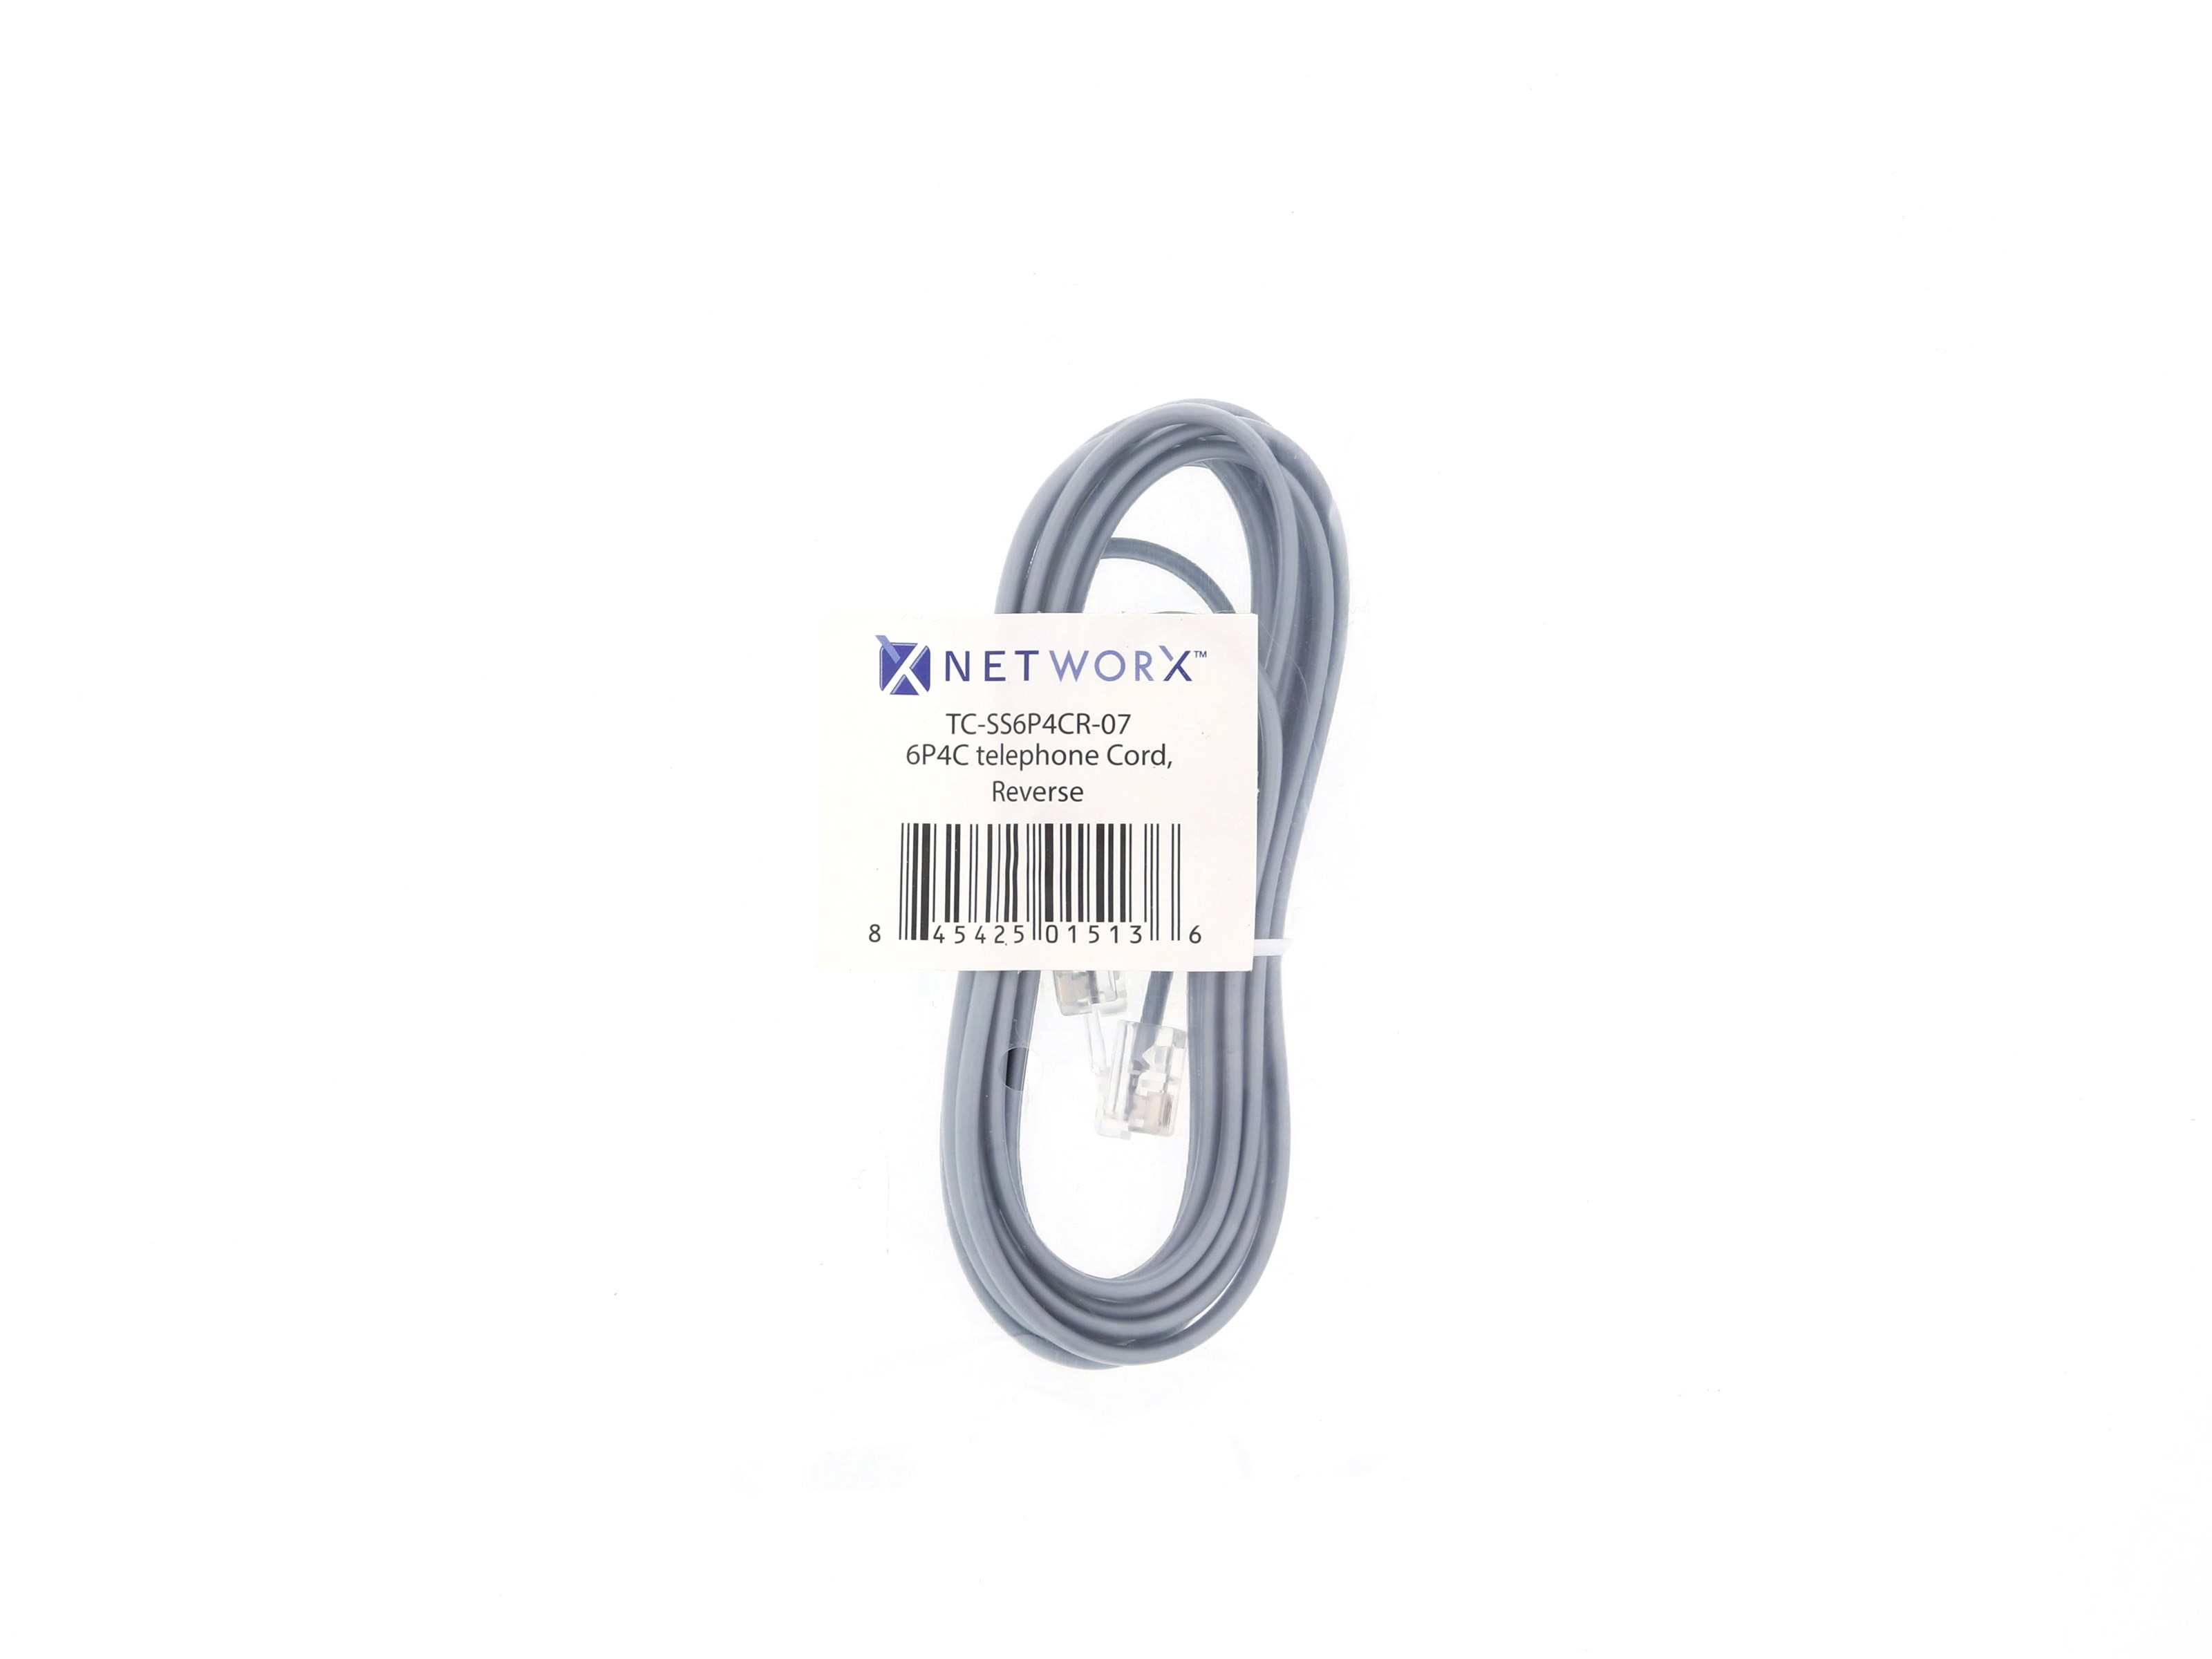 Rj11 4 Conductor Cross Wired Telephone Cable 7 Ft